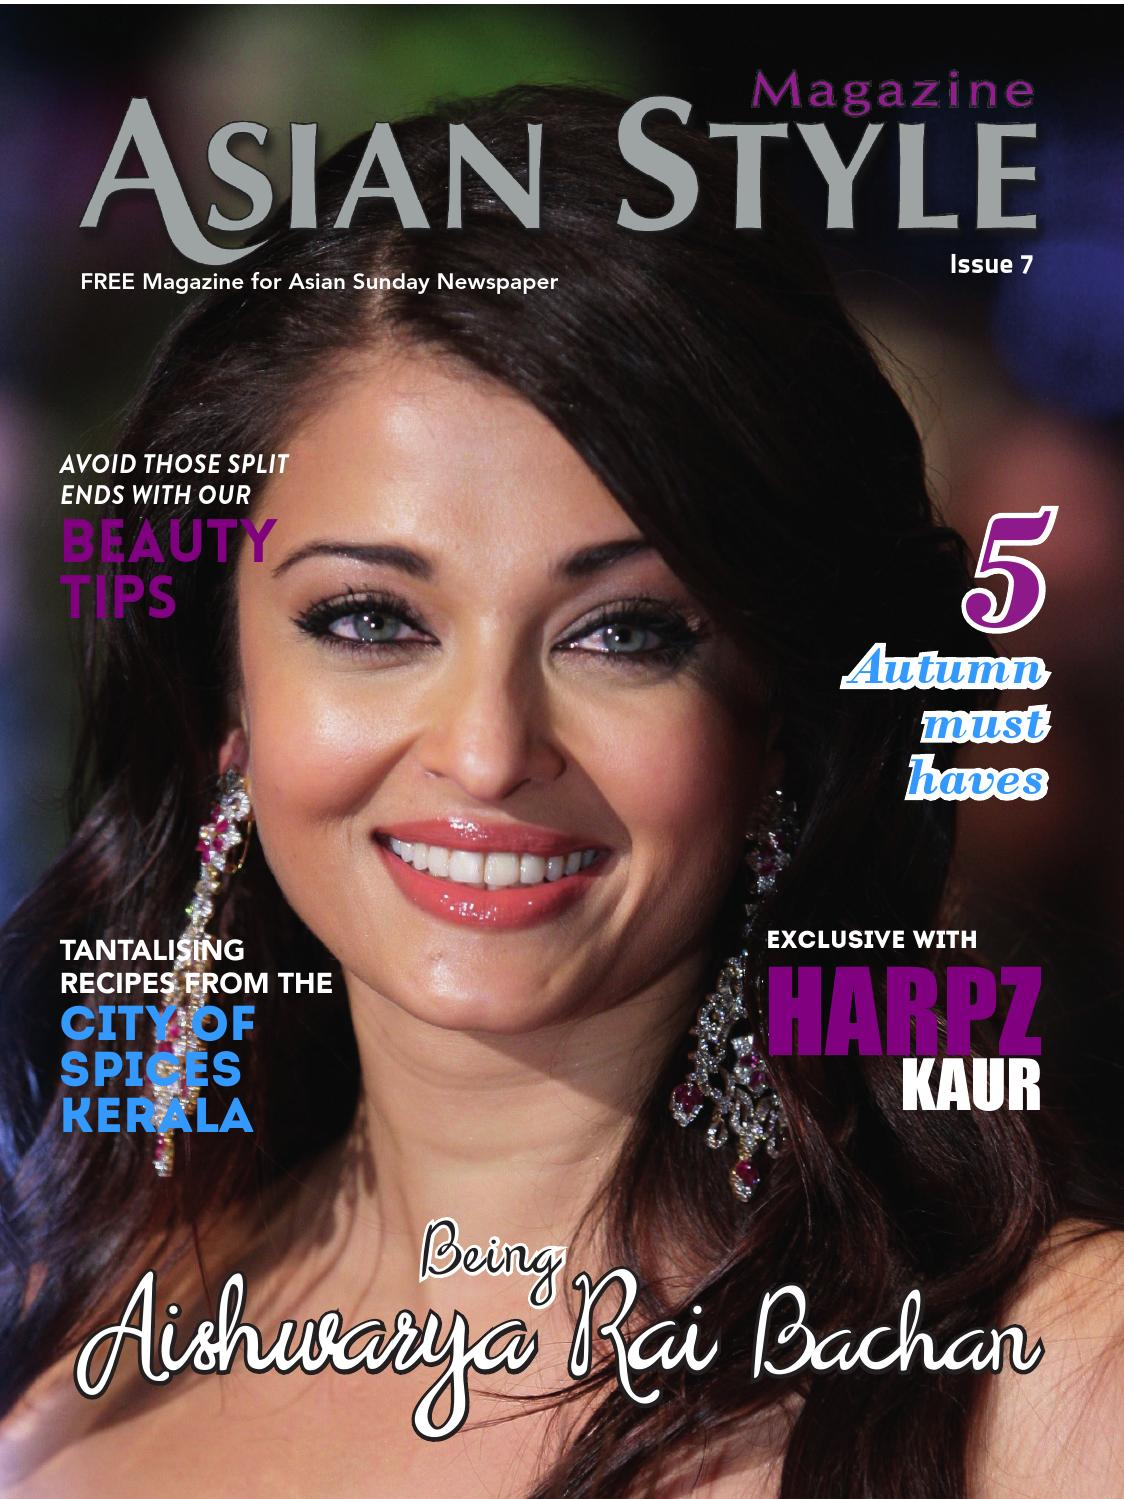 Asian Style Magazine Issue 7 Free Inside Sunday News By Issuu